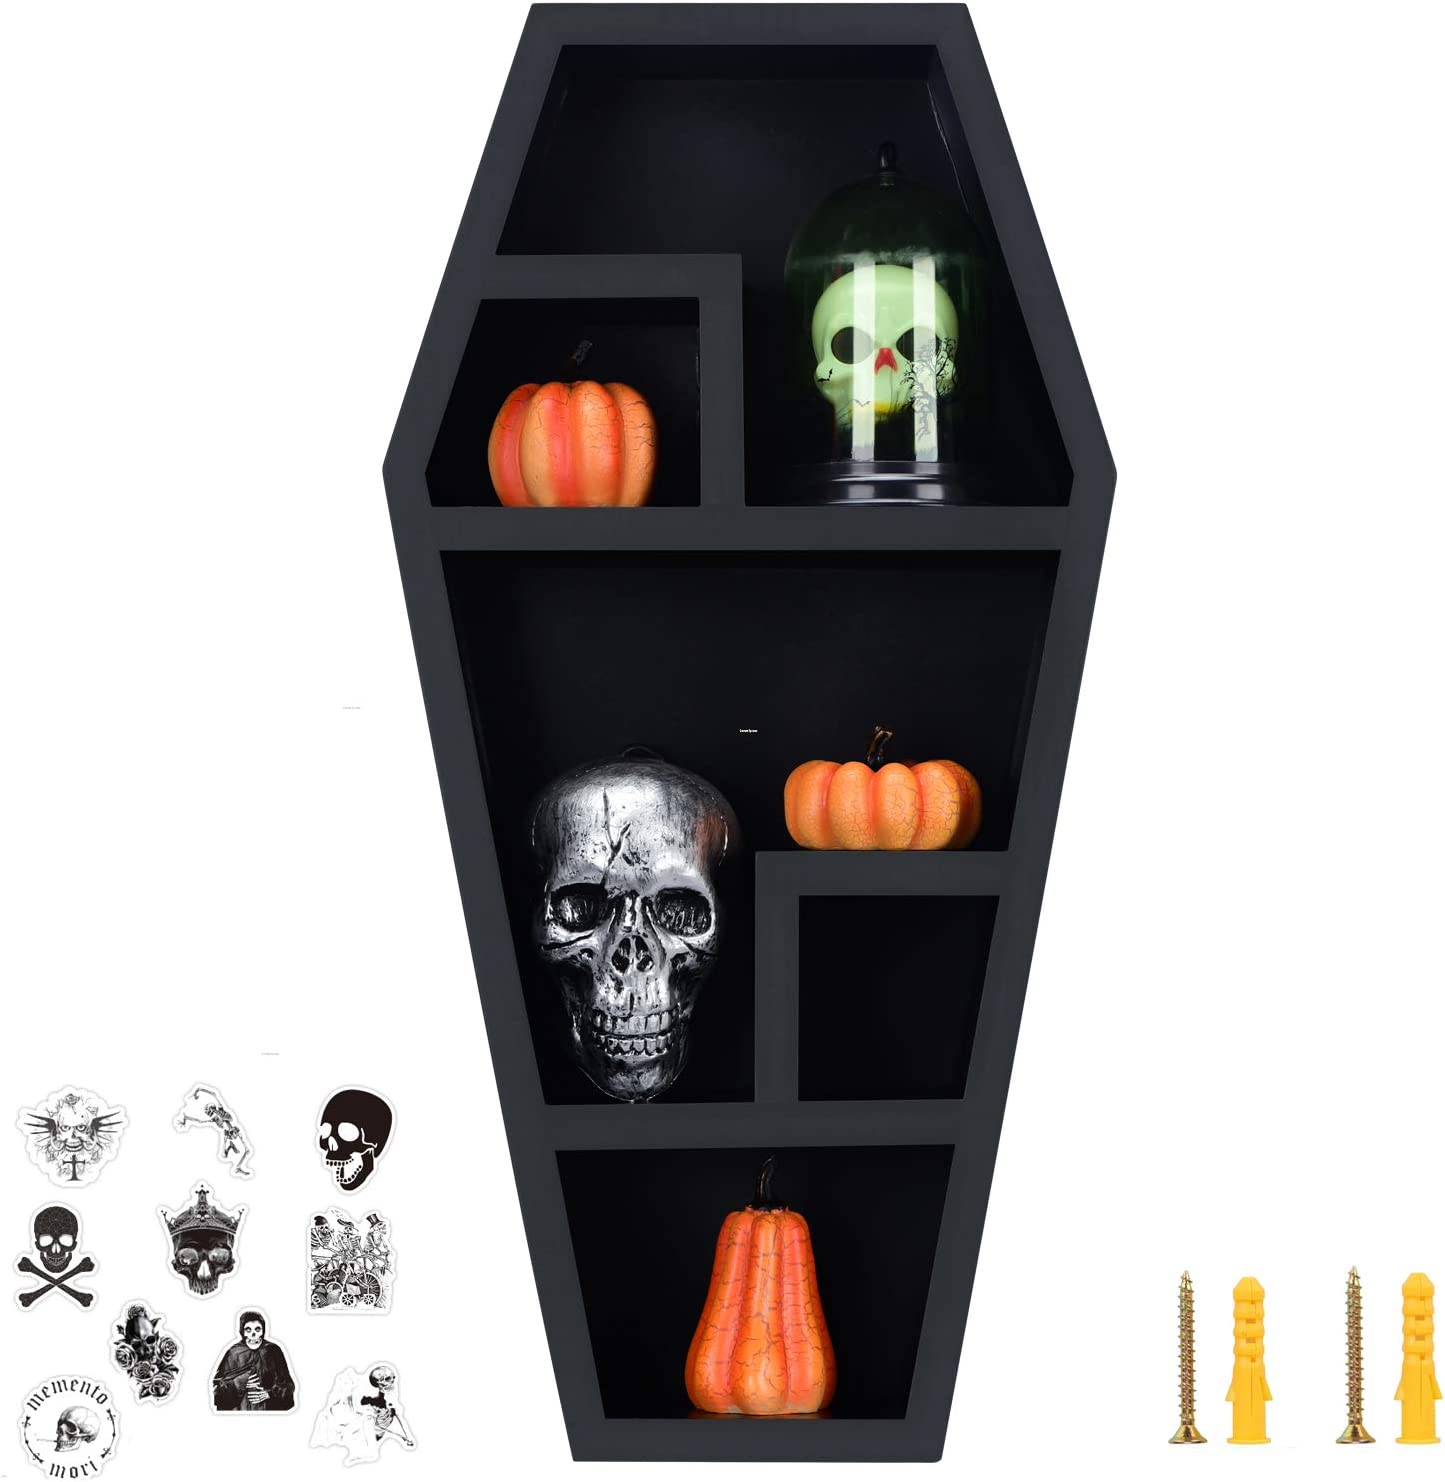 Coffin Shelf - Large - Gothic Home Decor for Display or Storage - Spooky Decor with Hardwares and Gothic Stickers- Wooden Shelf for Tabletop or Wall Hanging- Black - 20X10X4 Inches -by HanSoar